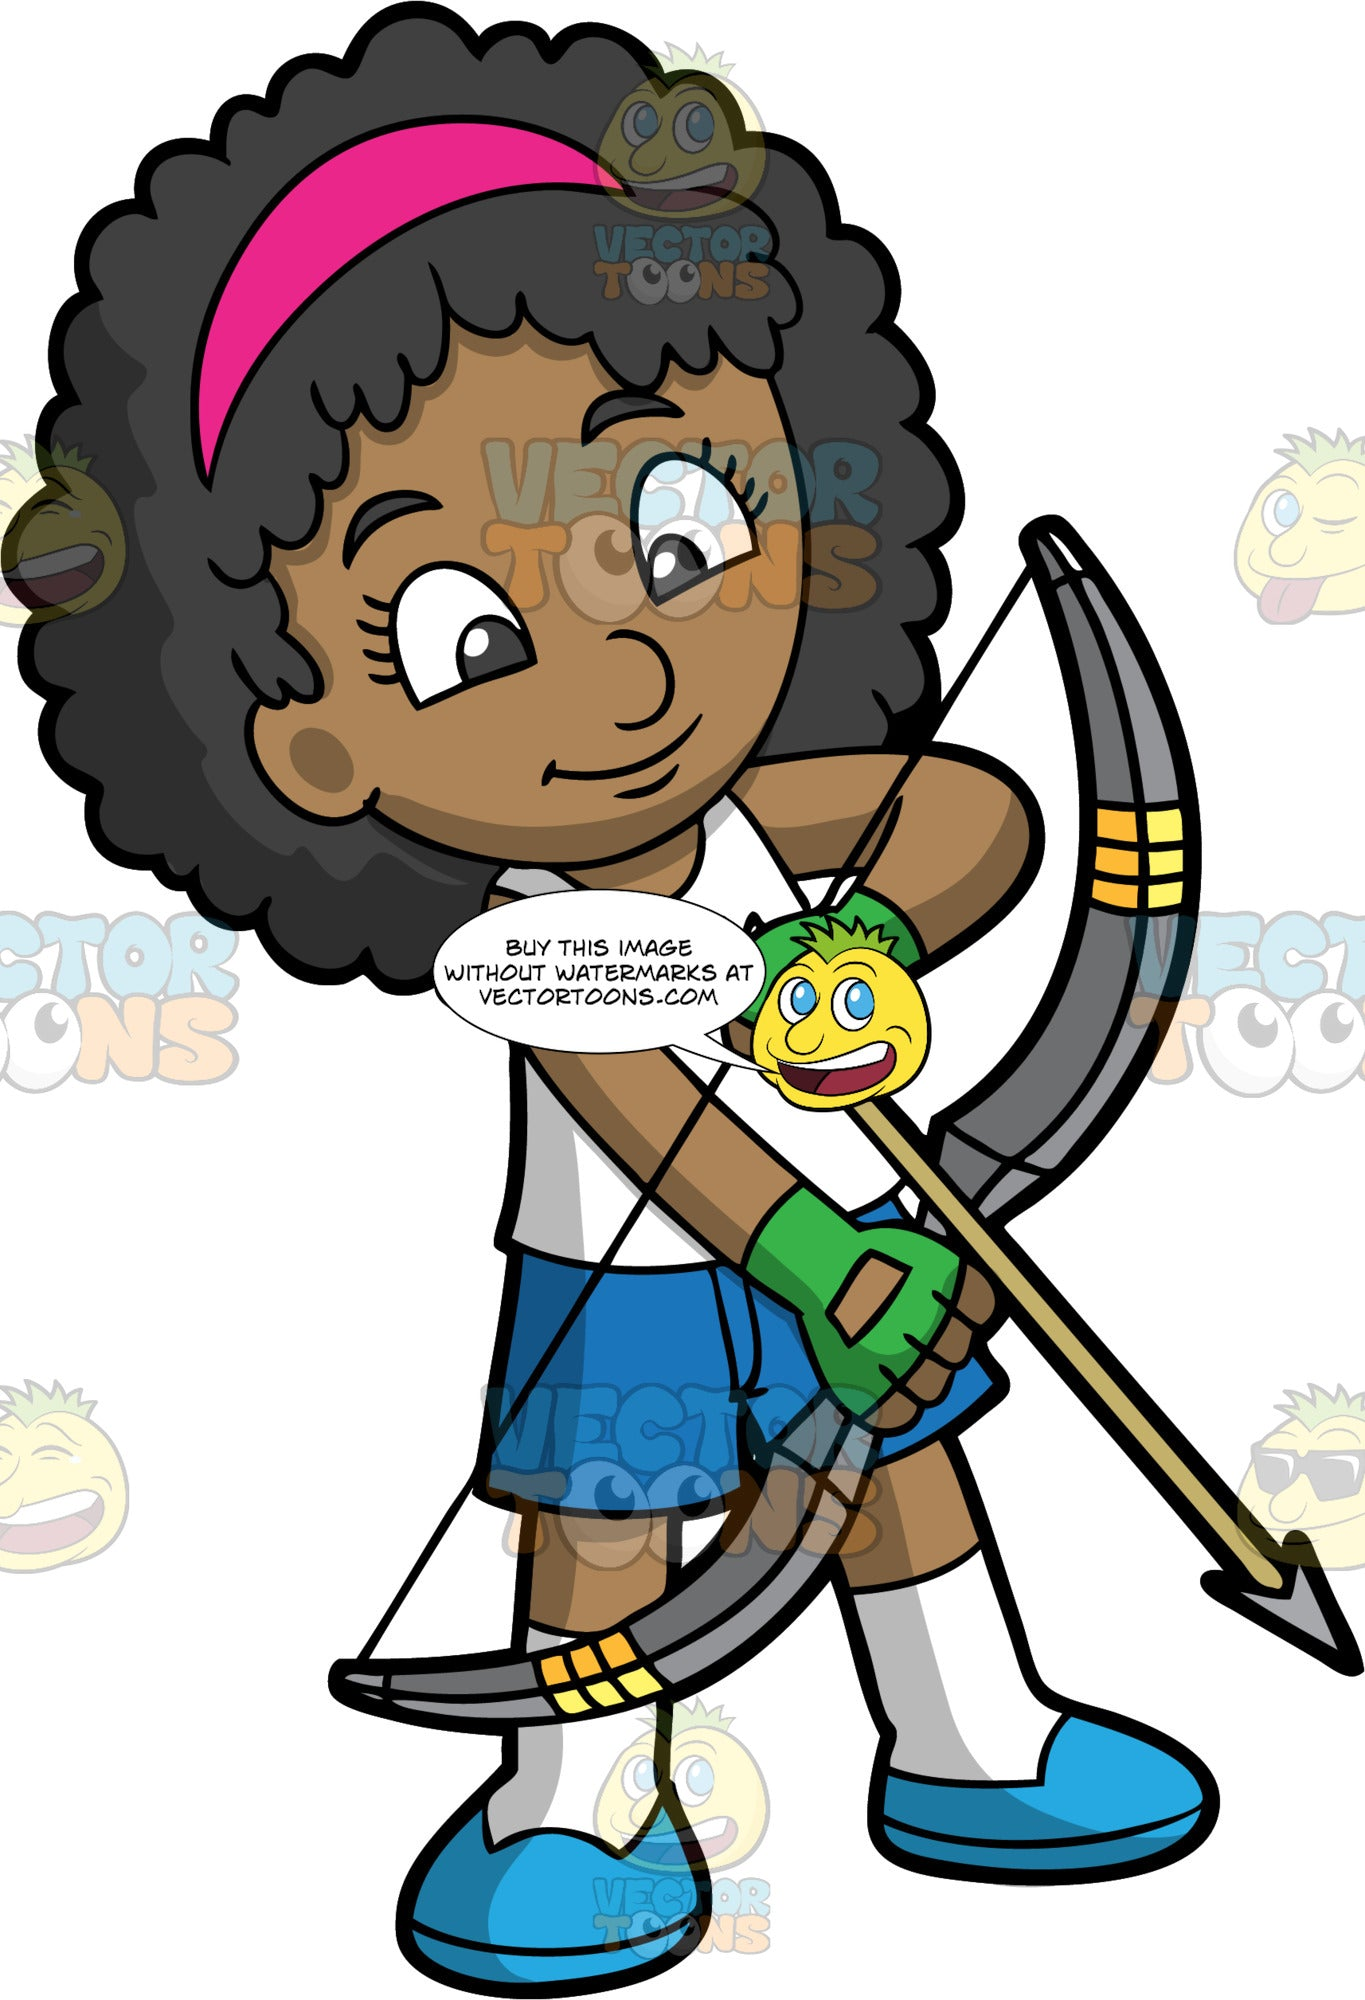 Black girl holding a bow and arrow. A black (African-American) girl holding a bow and arrow. Wearing blue shoes, white socks, blue shorts, white shirt and green gloves. She has black hair, dark eyes and a pink hair band. Holding her bow and arrow down while looking at it.